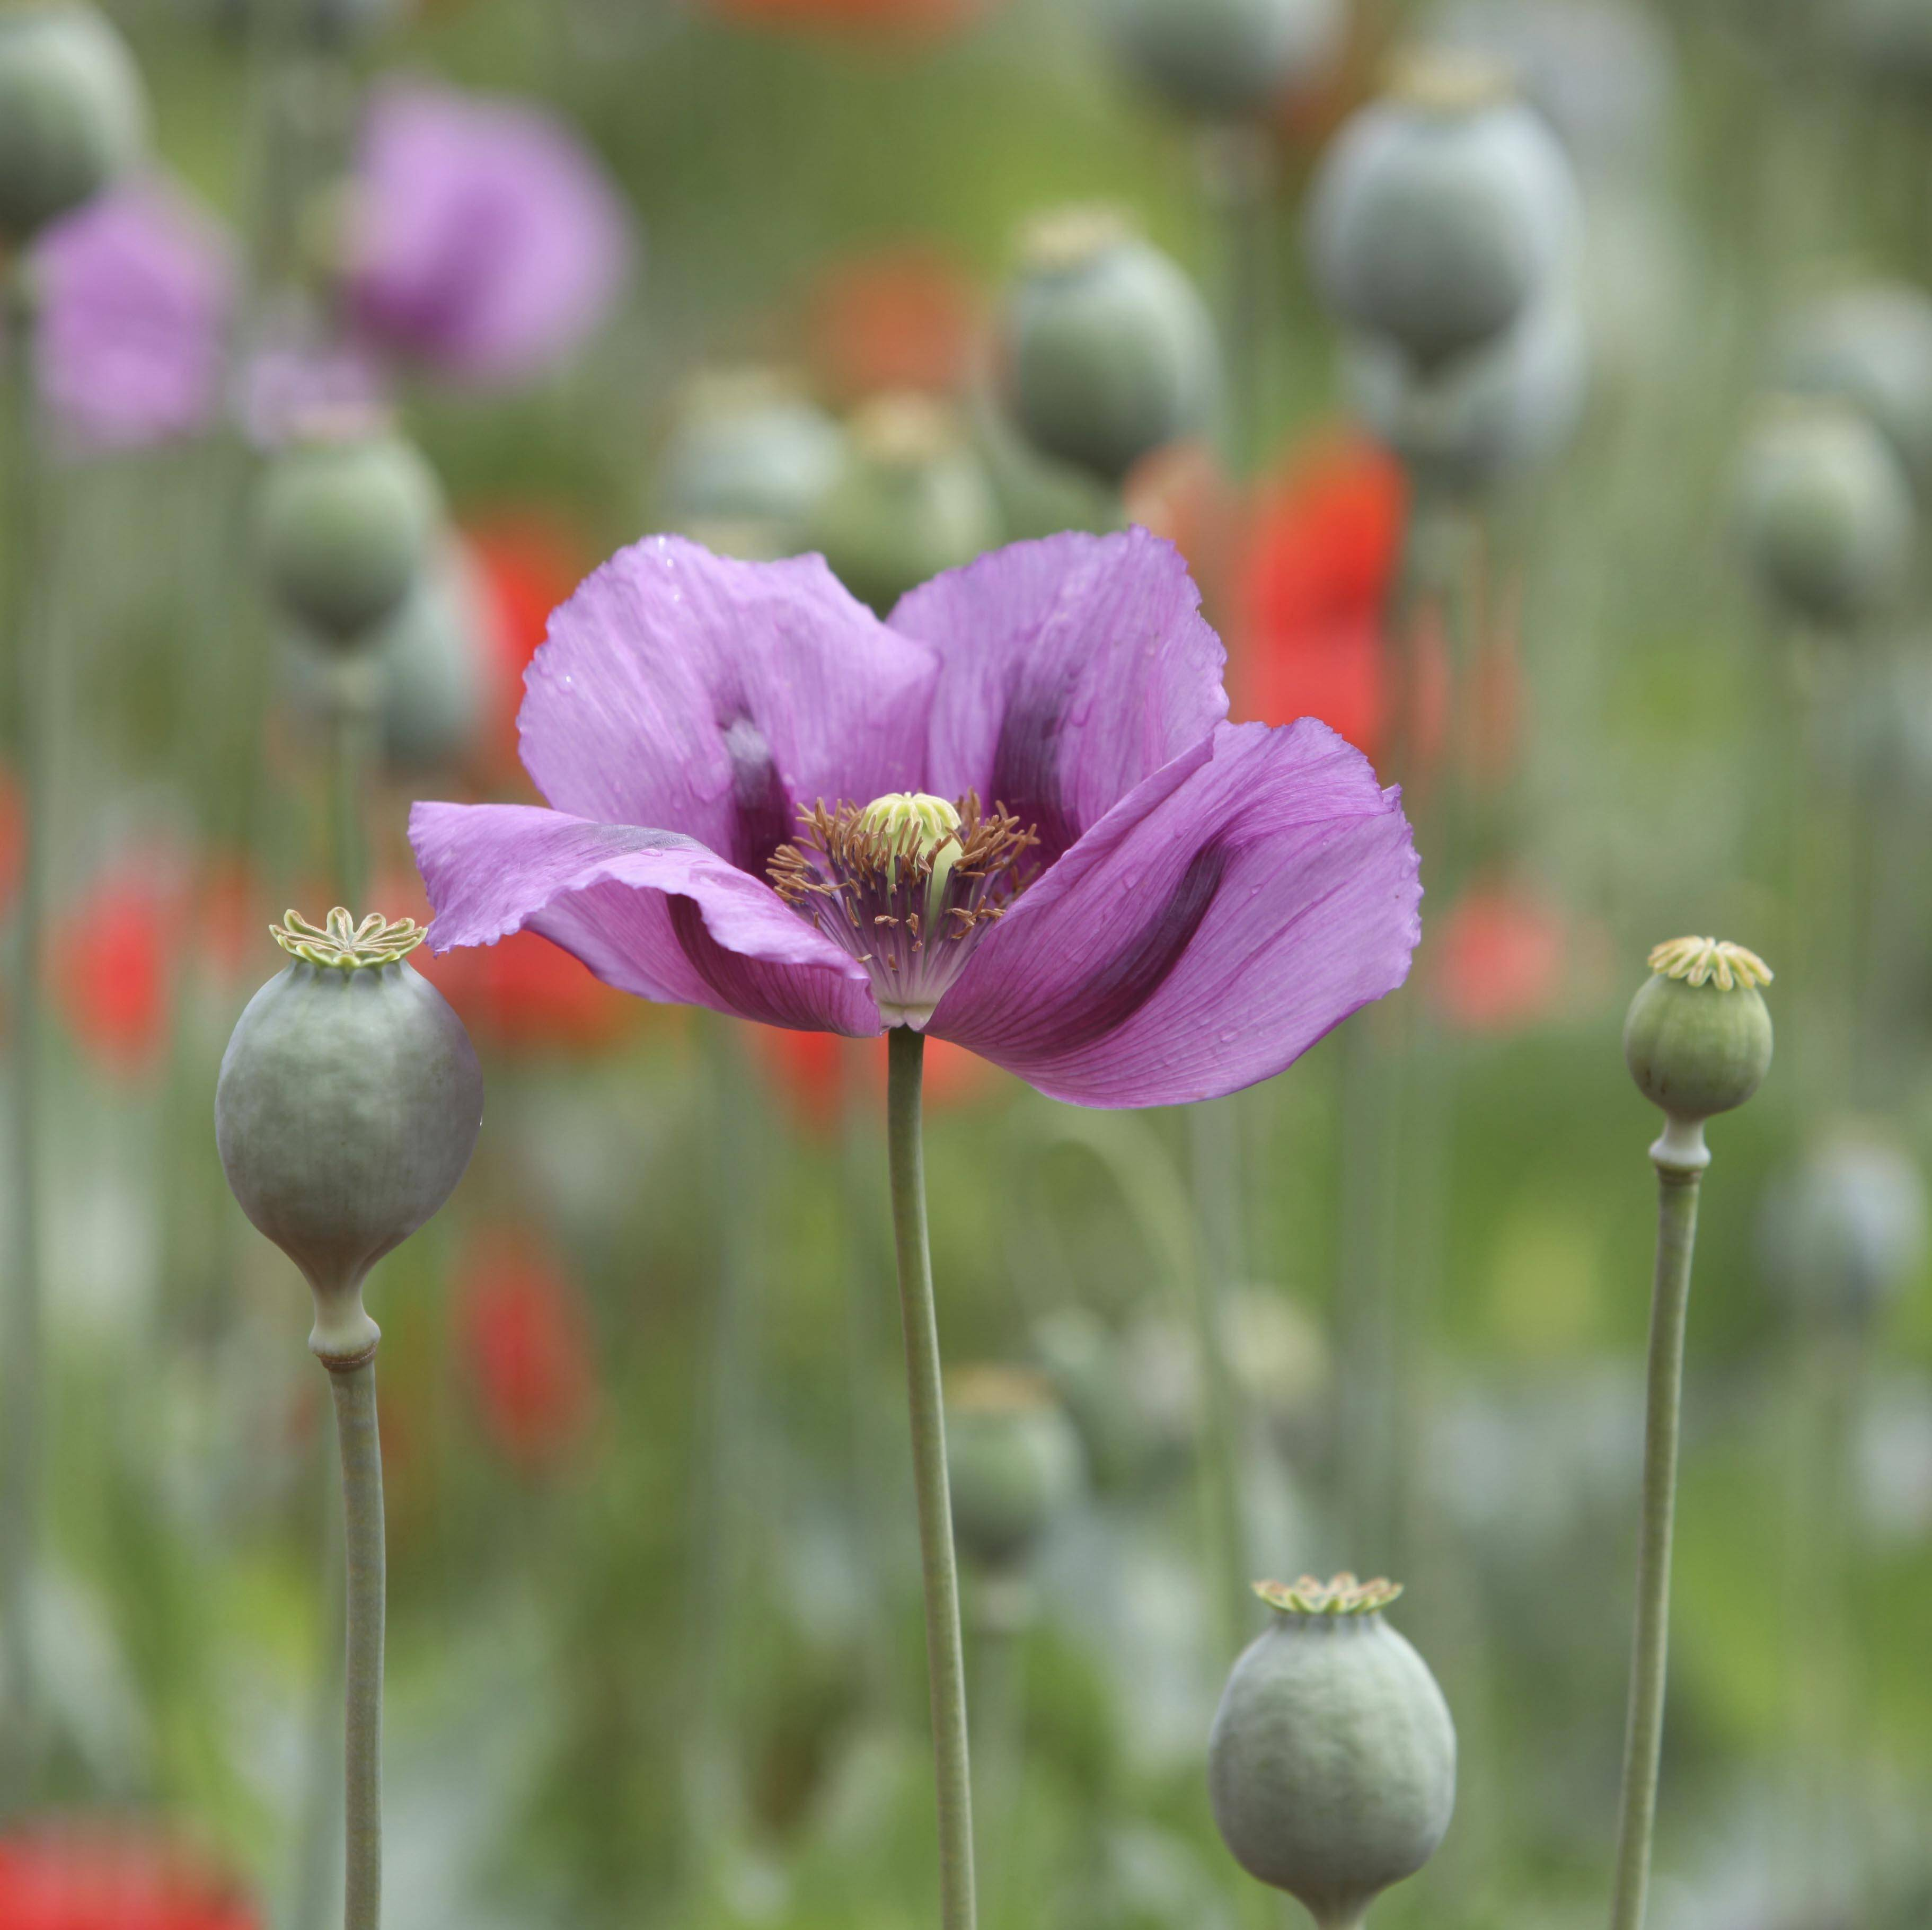 Poppy seeds erupt from the pods left behind after the petals fall away.